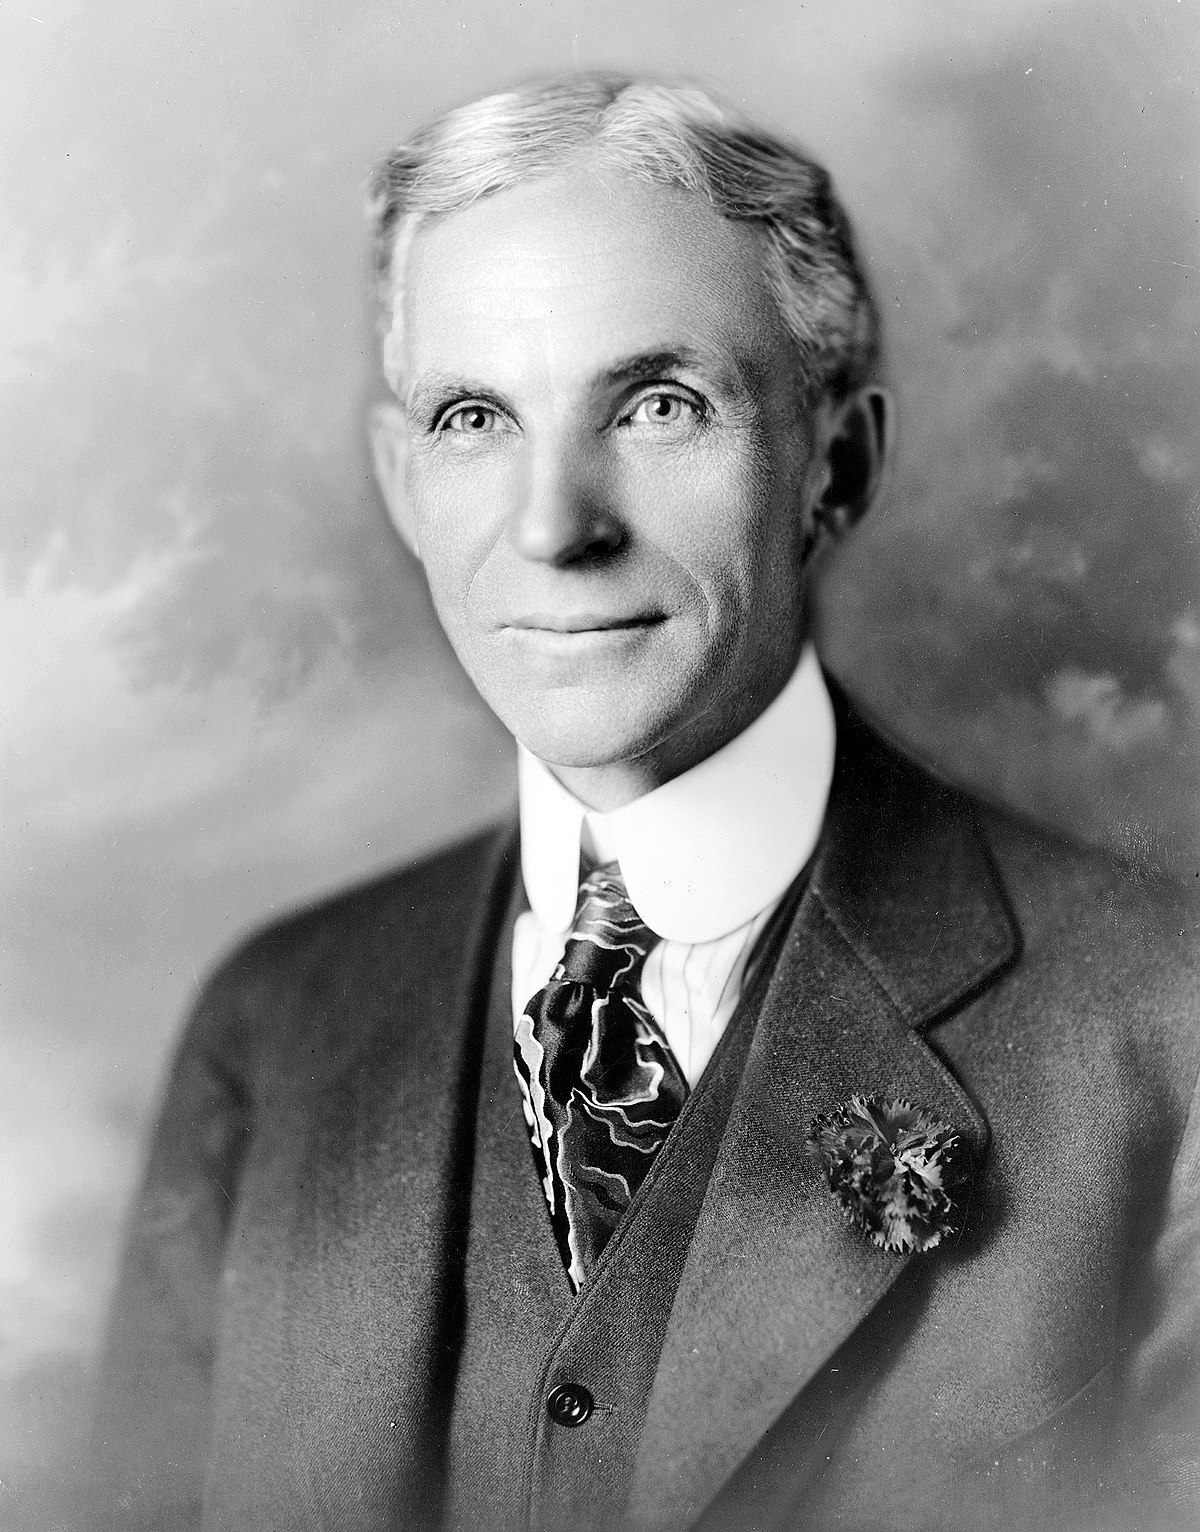 Foto do Genial  Henry Ford